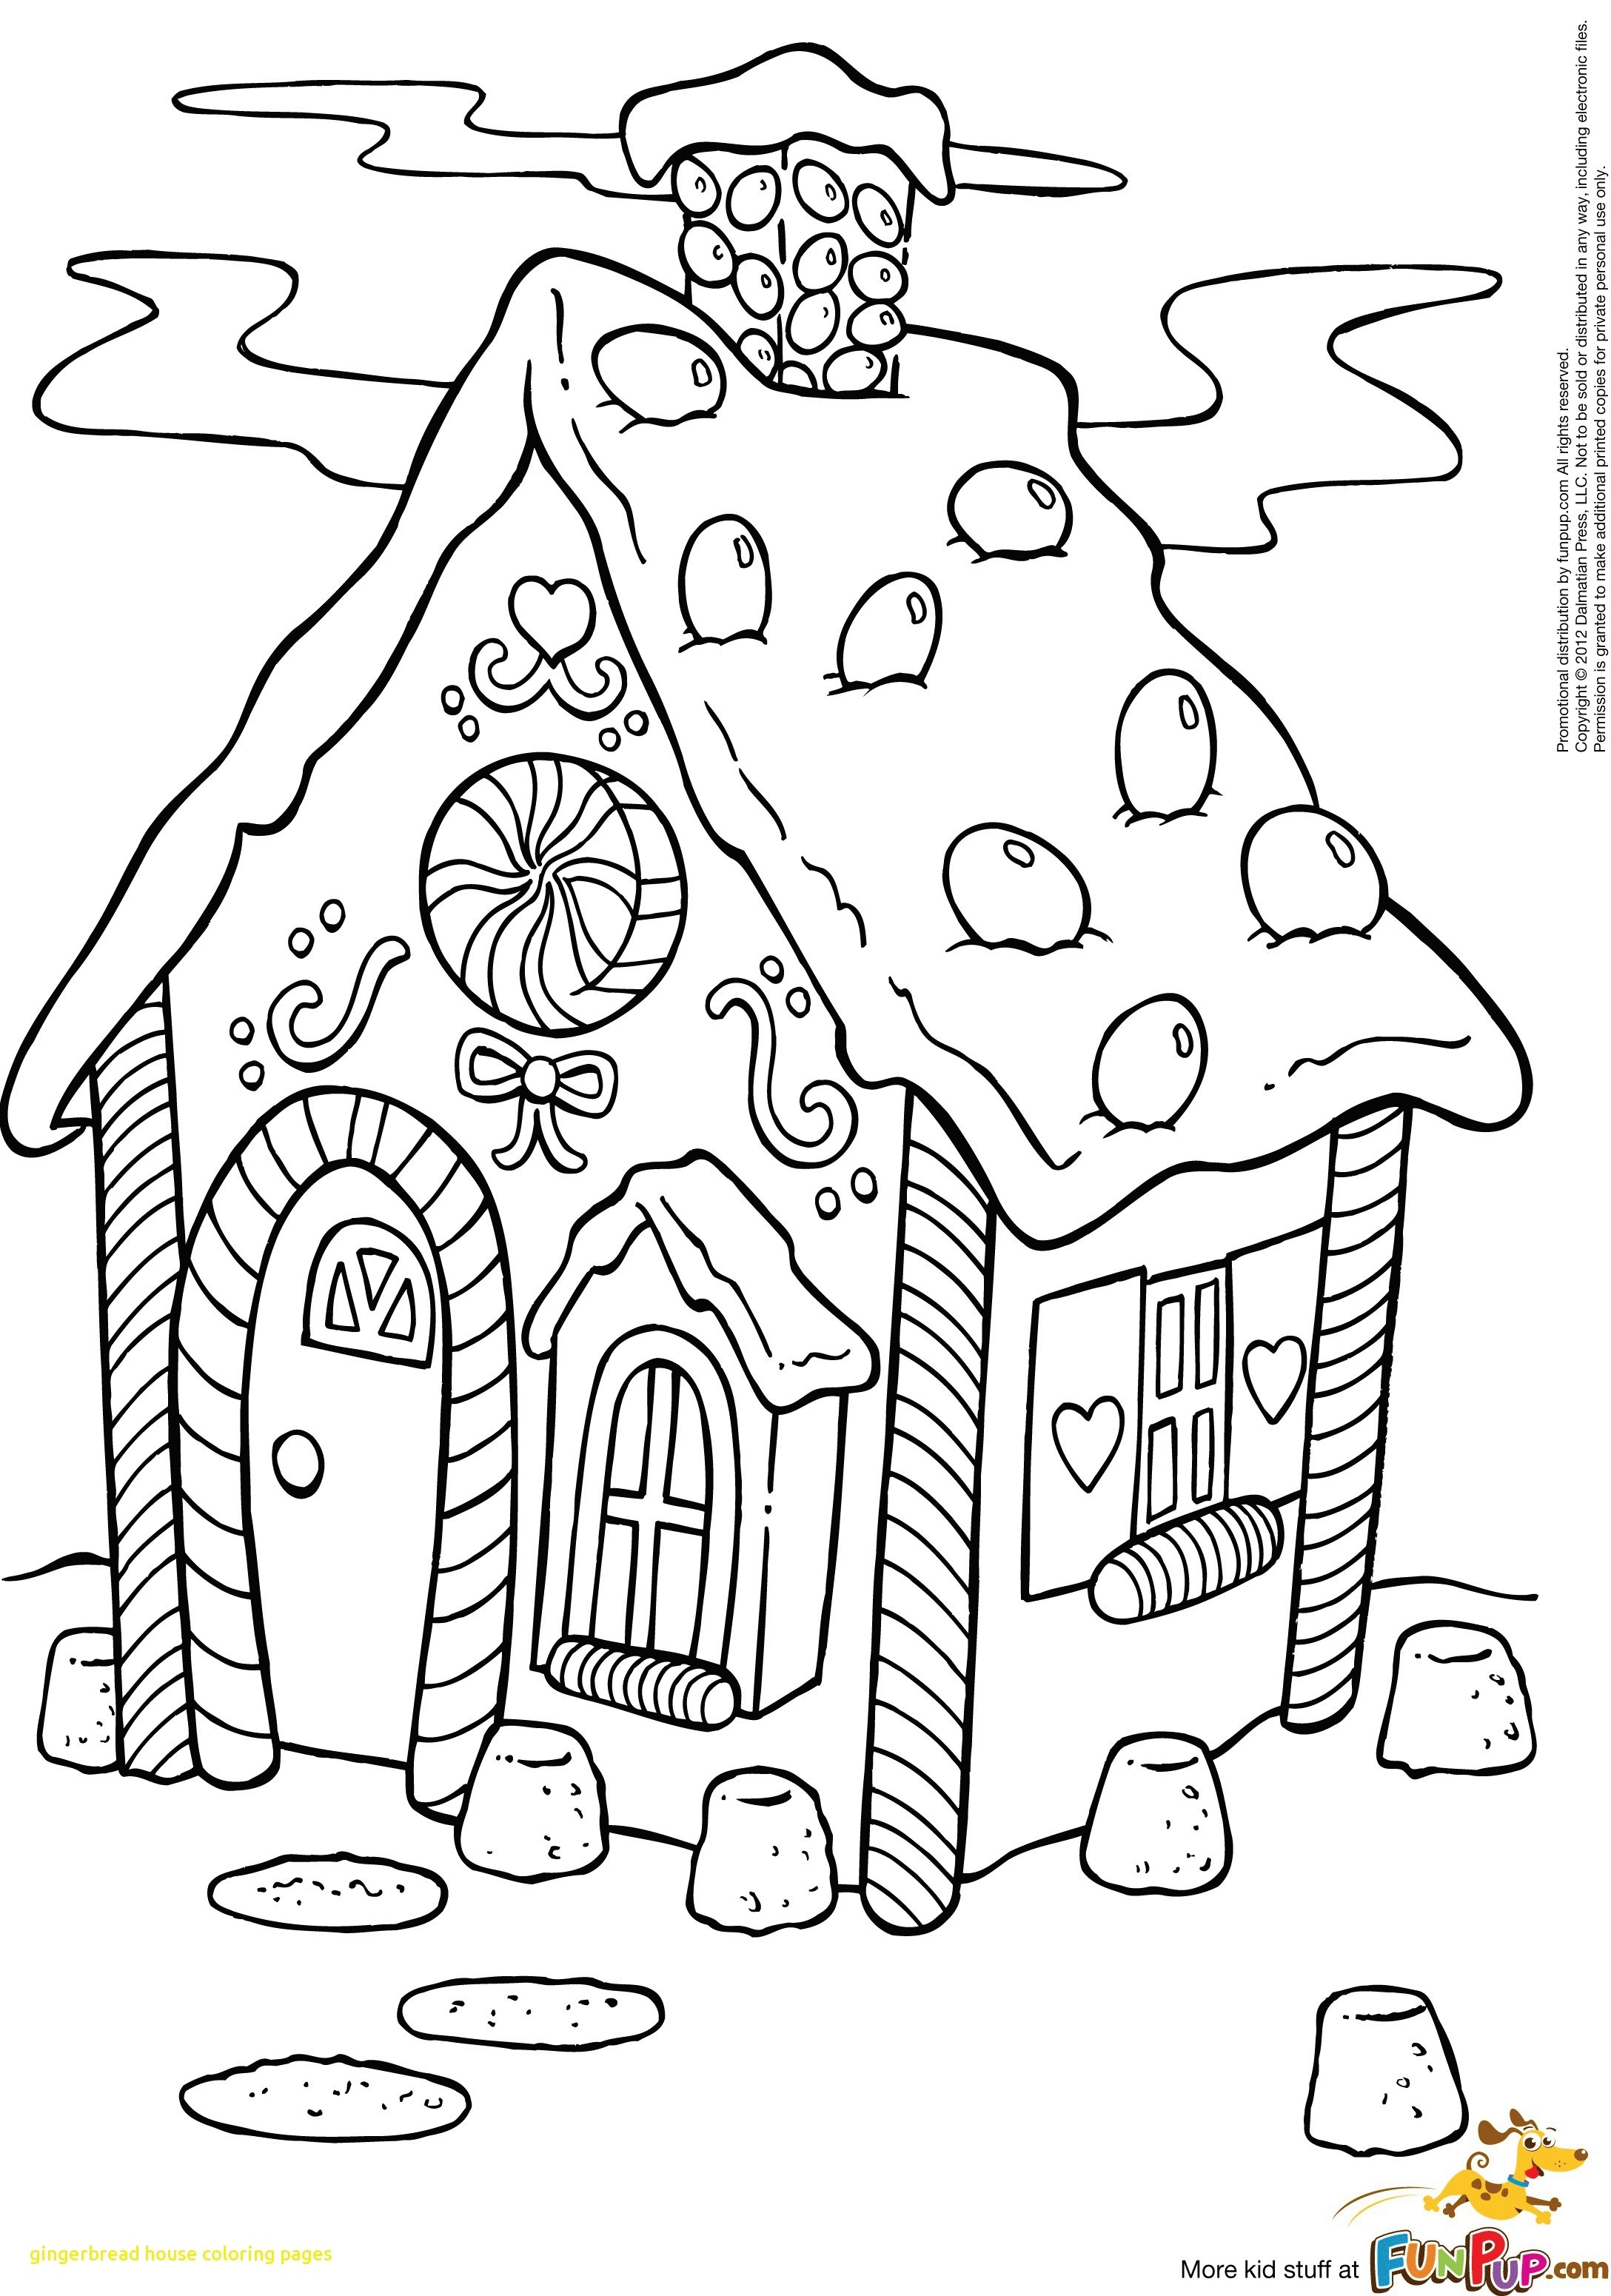 Gingerbread Man House Coloring Pages At Getcolorings